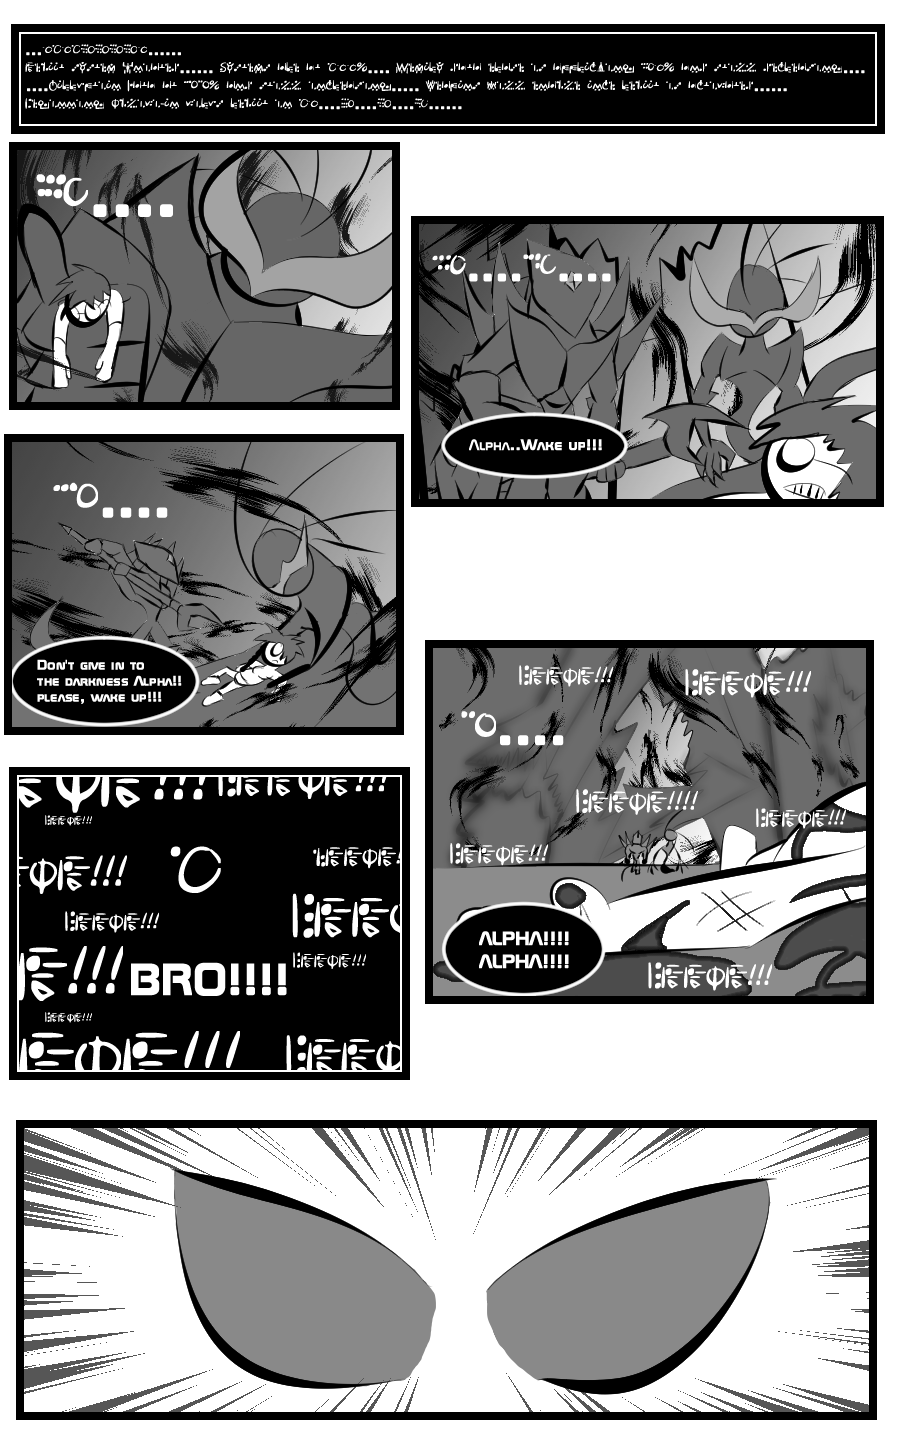 DI1 Comic Pg.1 by Thesimpleartist4